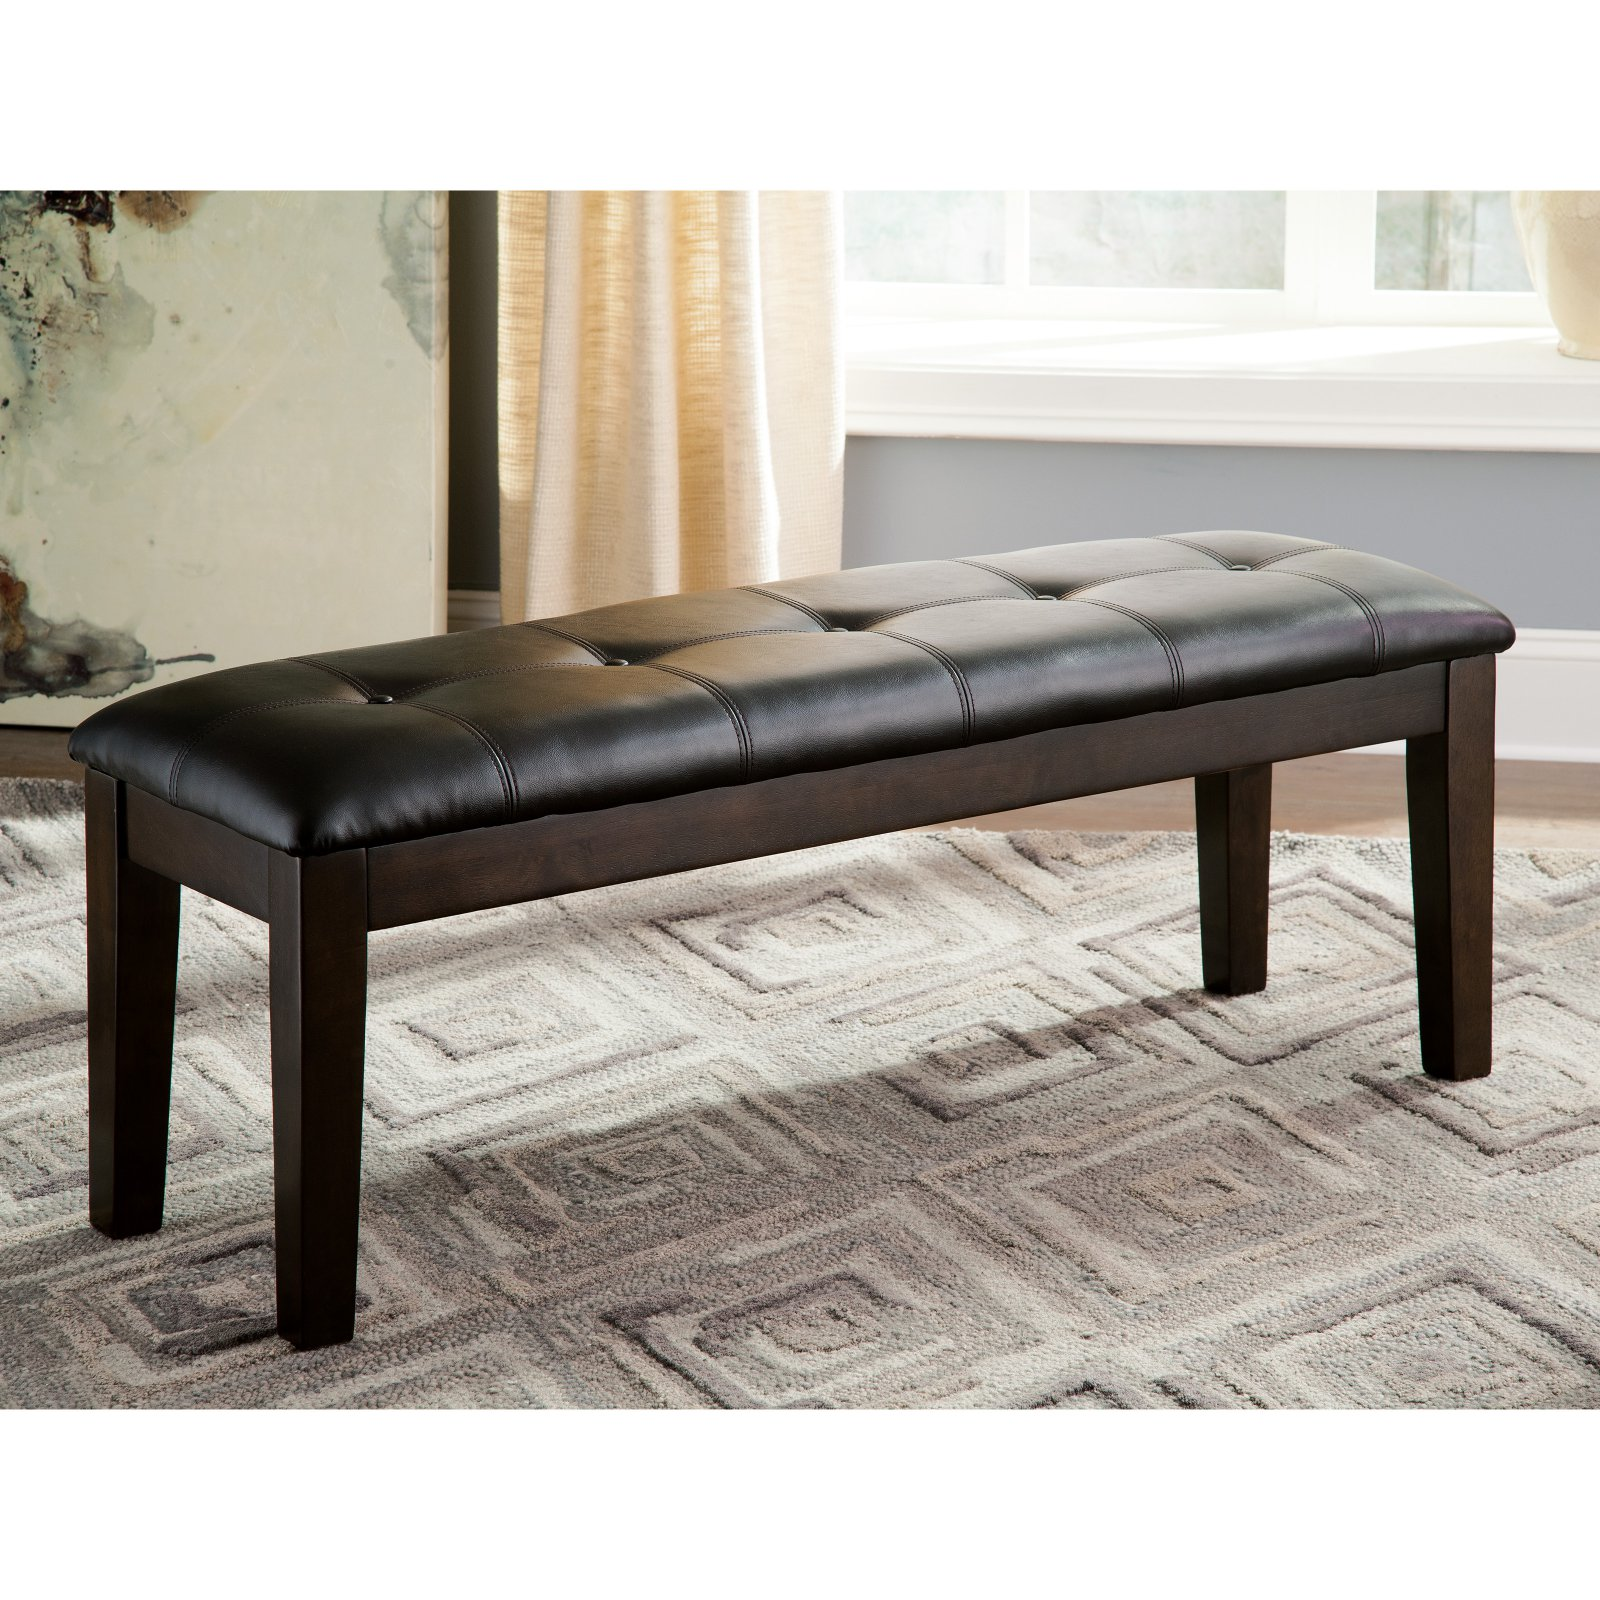 signature design by ashley haddigan upholstered dining bench